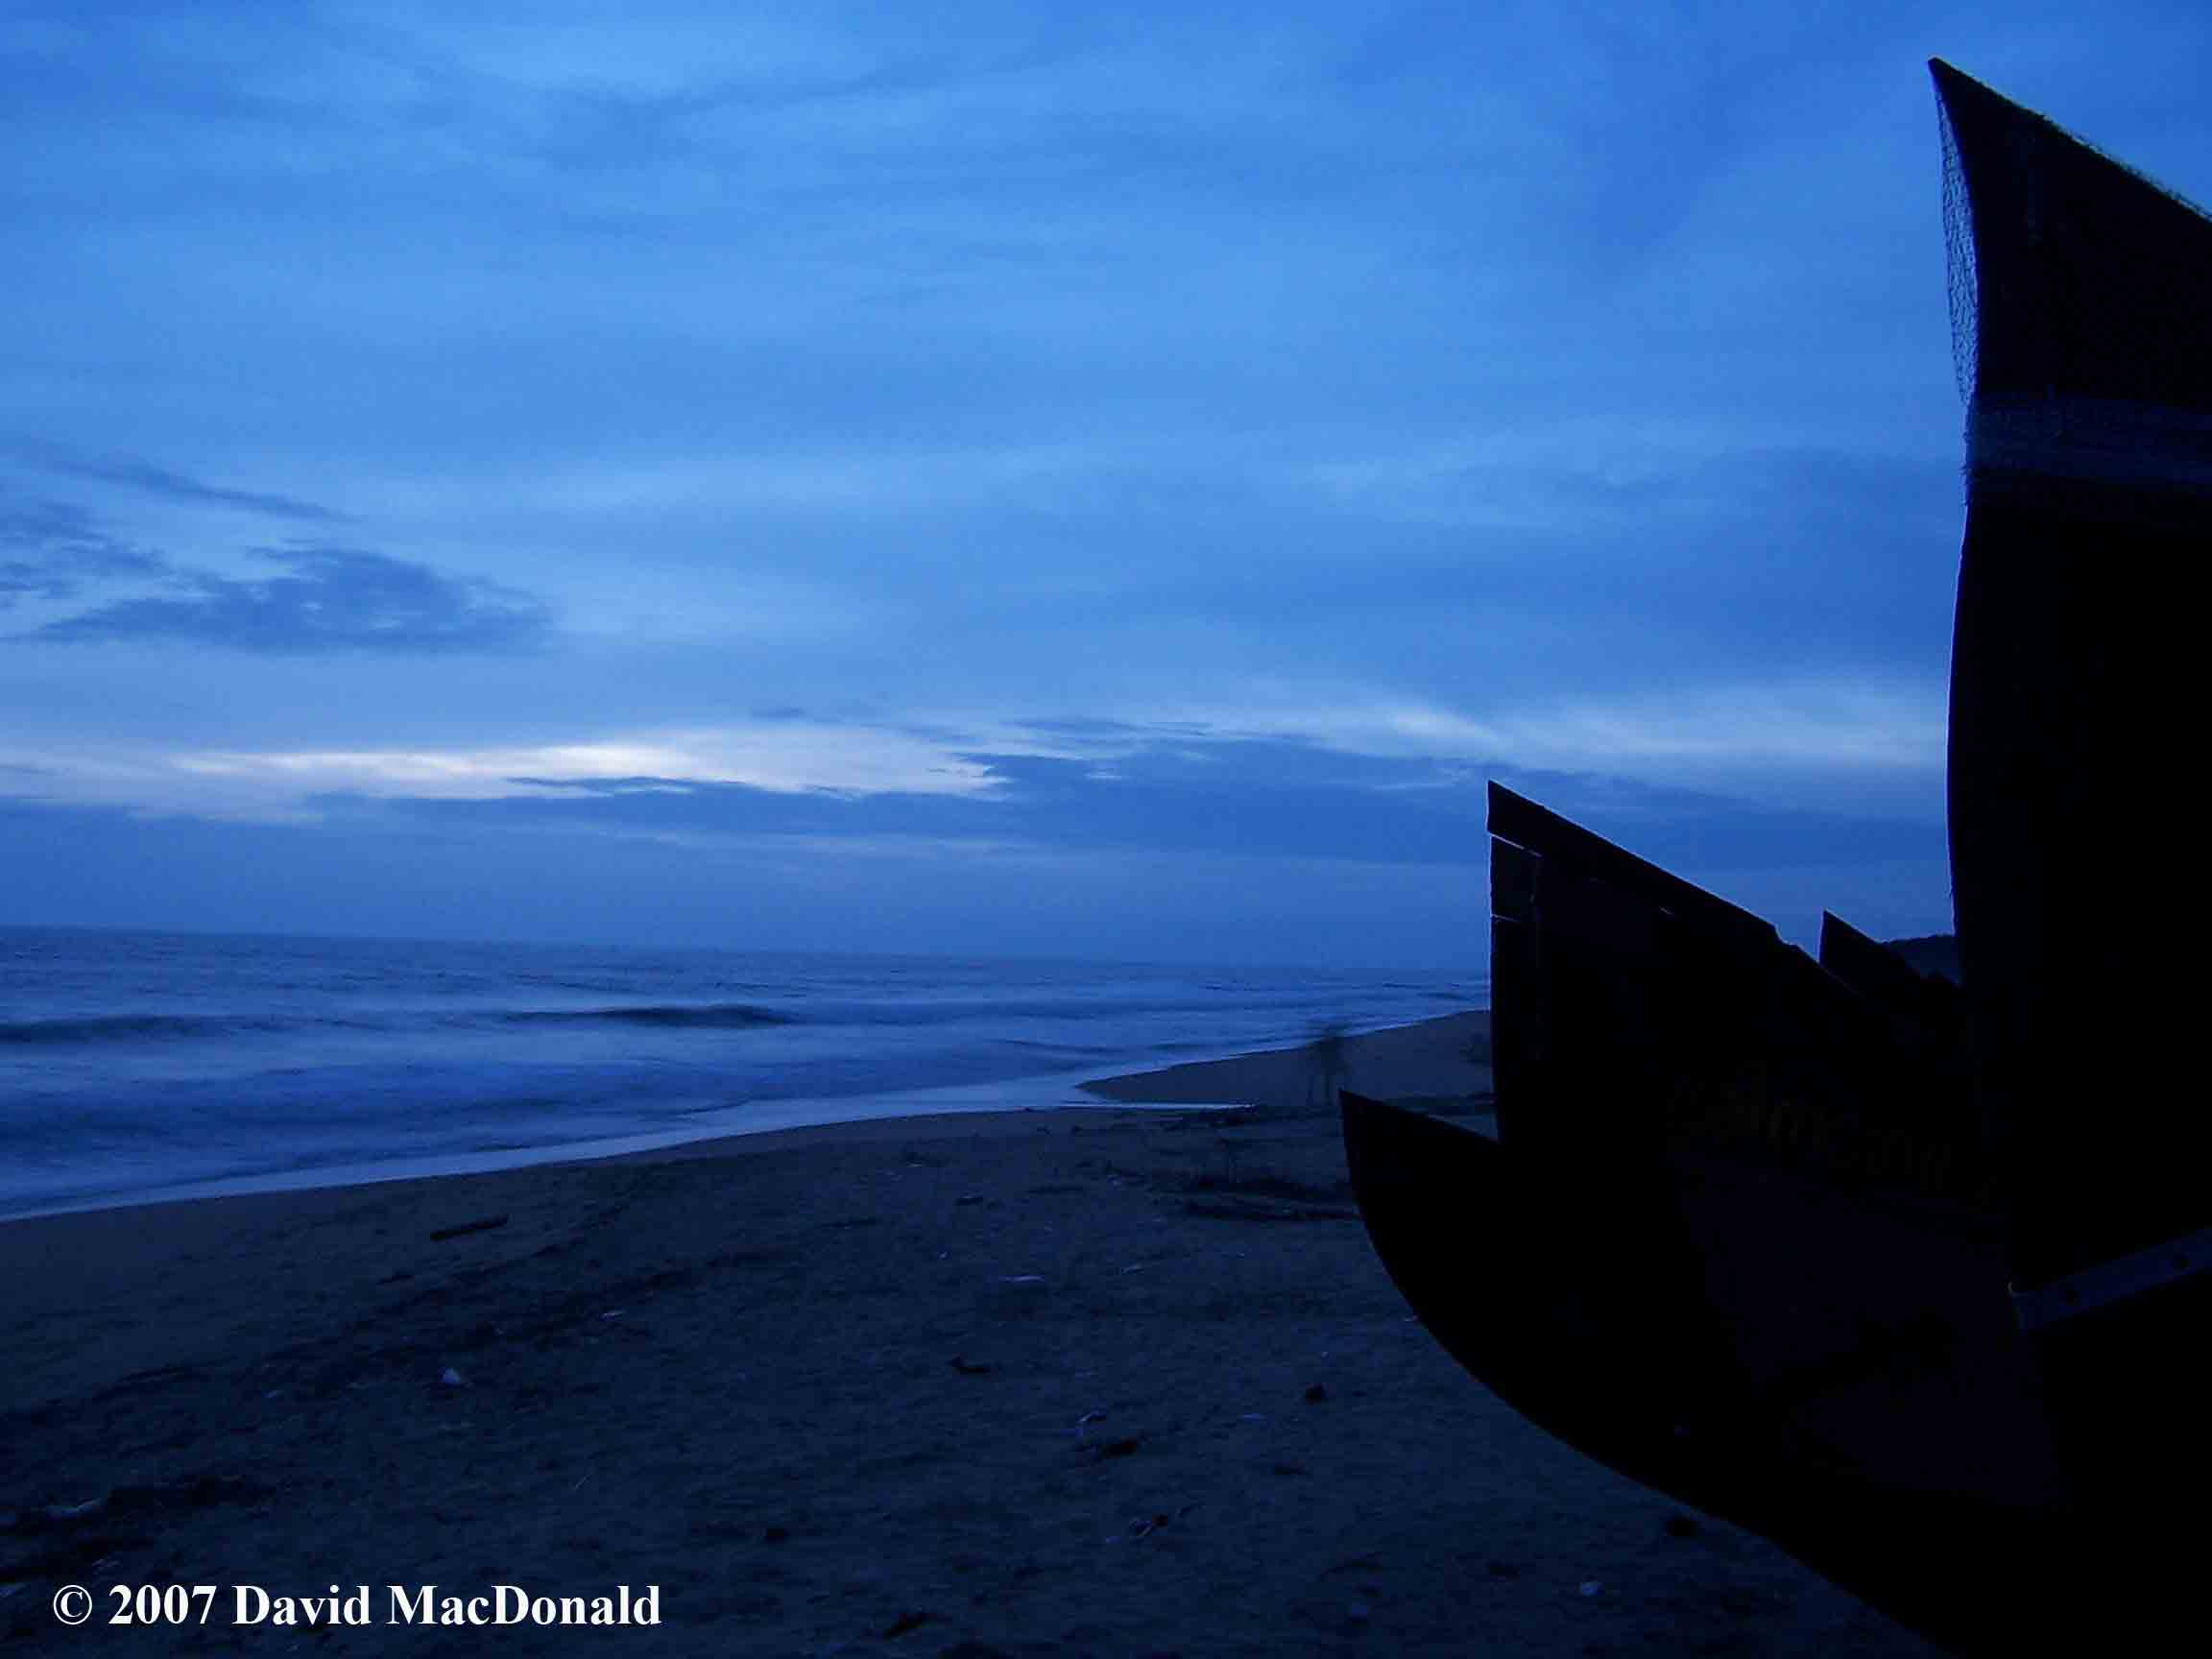 Indian fishing boats on the beach of the Arabian Sea at dusk